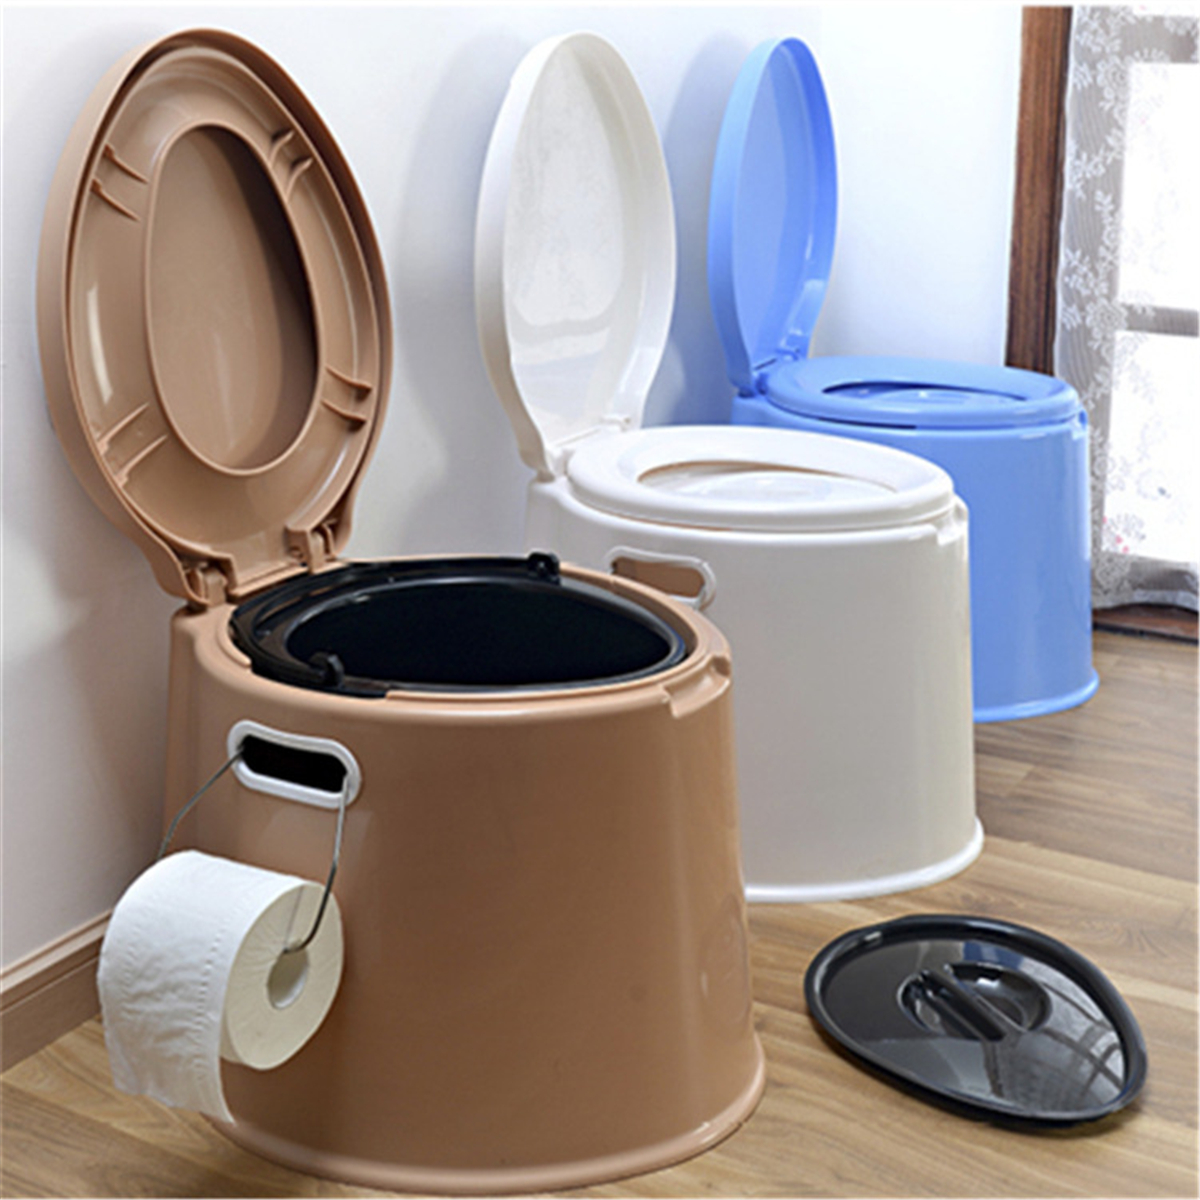 Arzil Portable Travel Toilet Compact Potty Bucket Seats w / Waste Tank For Camping and Hiking Indoor Outdoor Boating, Caravan, Campsite, Hospital Gallon Toilet